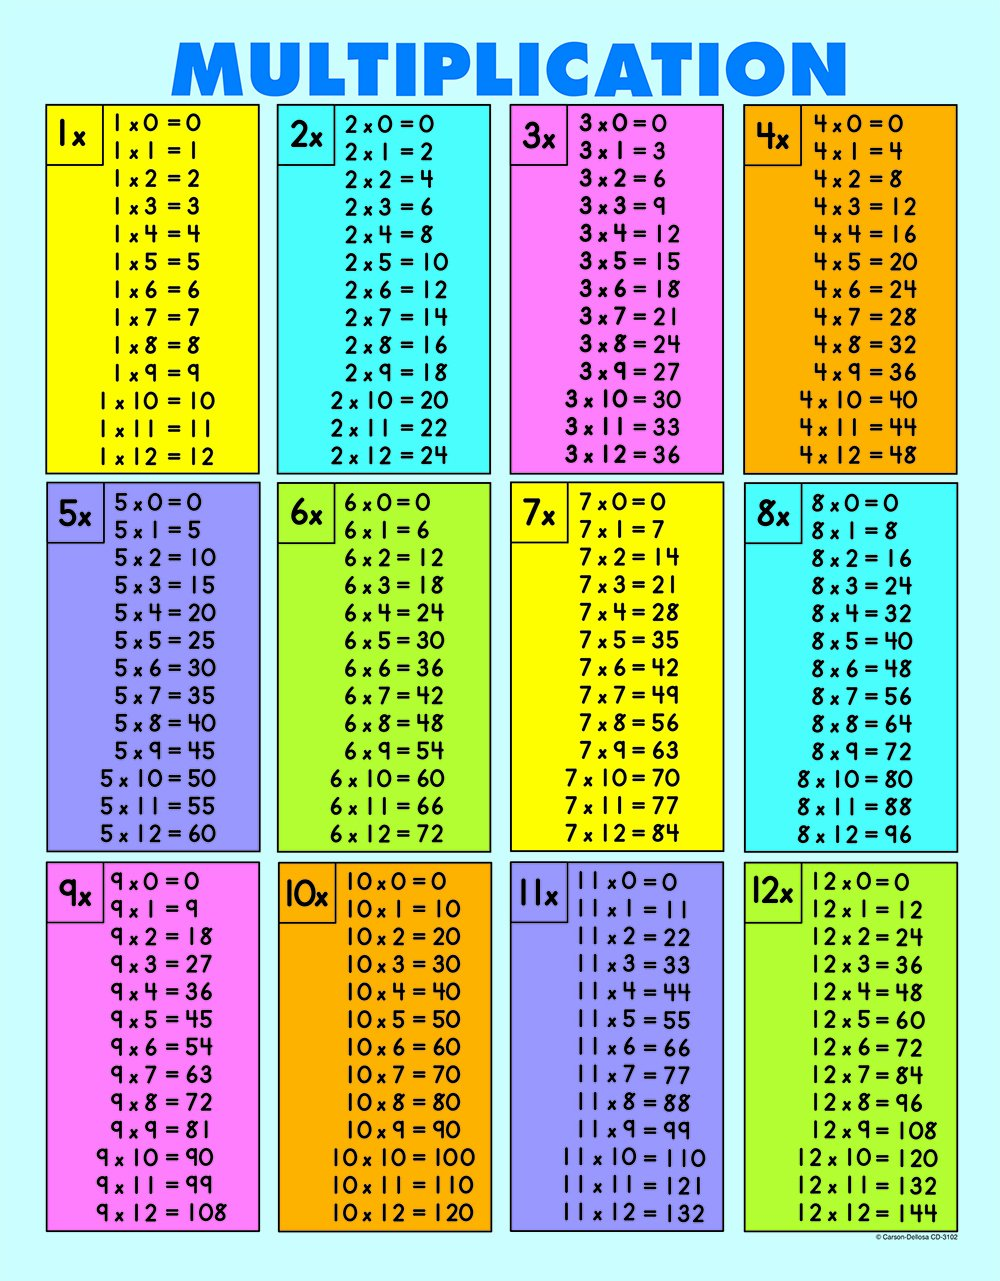 Amazon.com : Carson Dellosa Multiplication Tables [all Facts To 12] Jumbo  Pad (3102) : Teaching Materials : Office Products